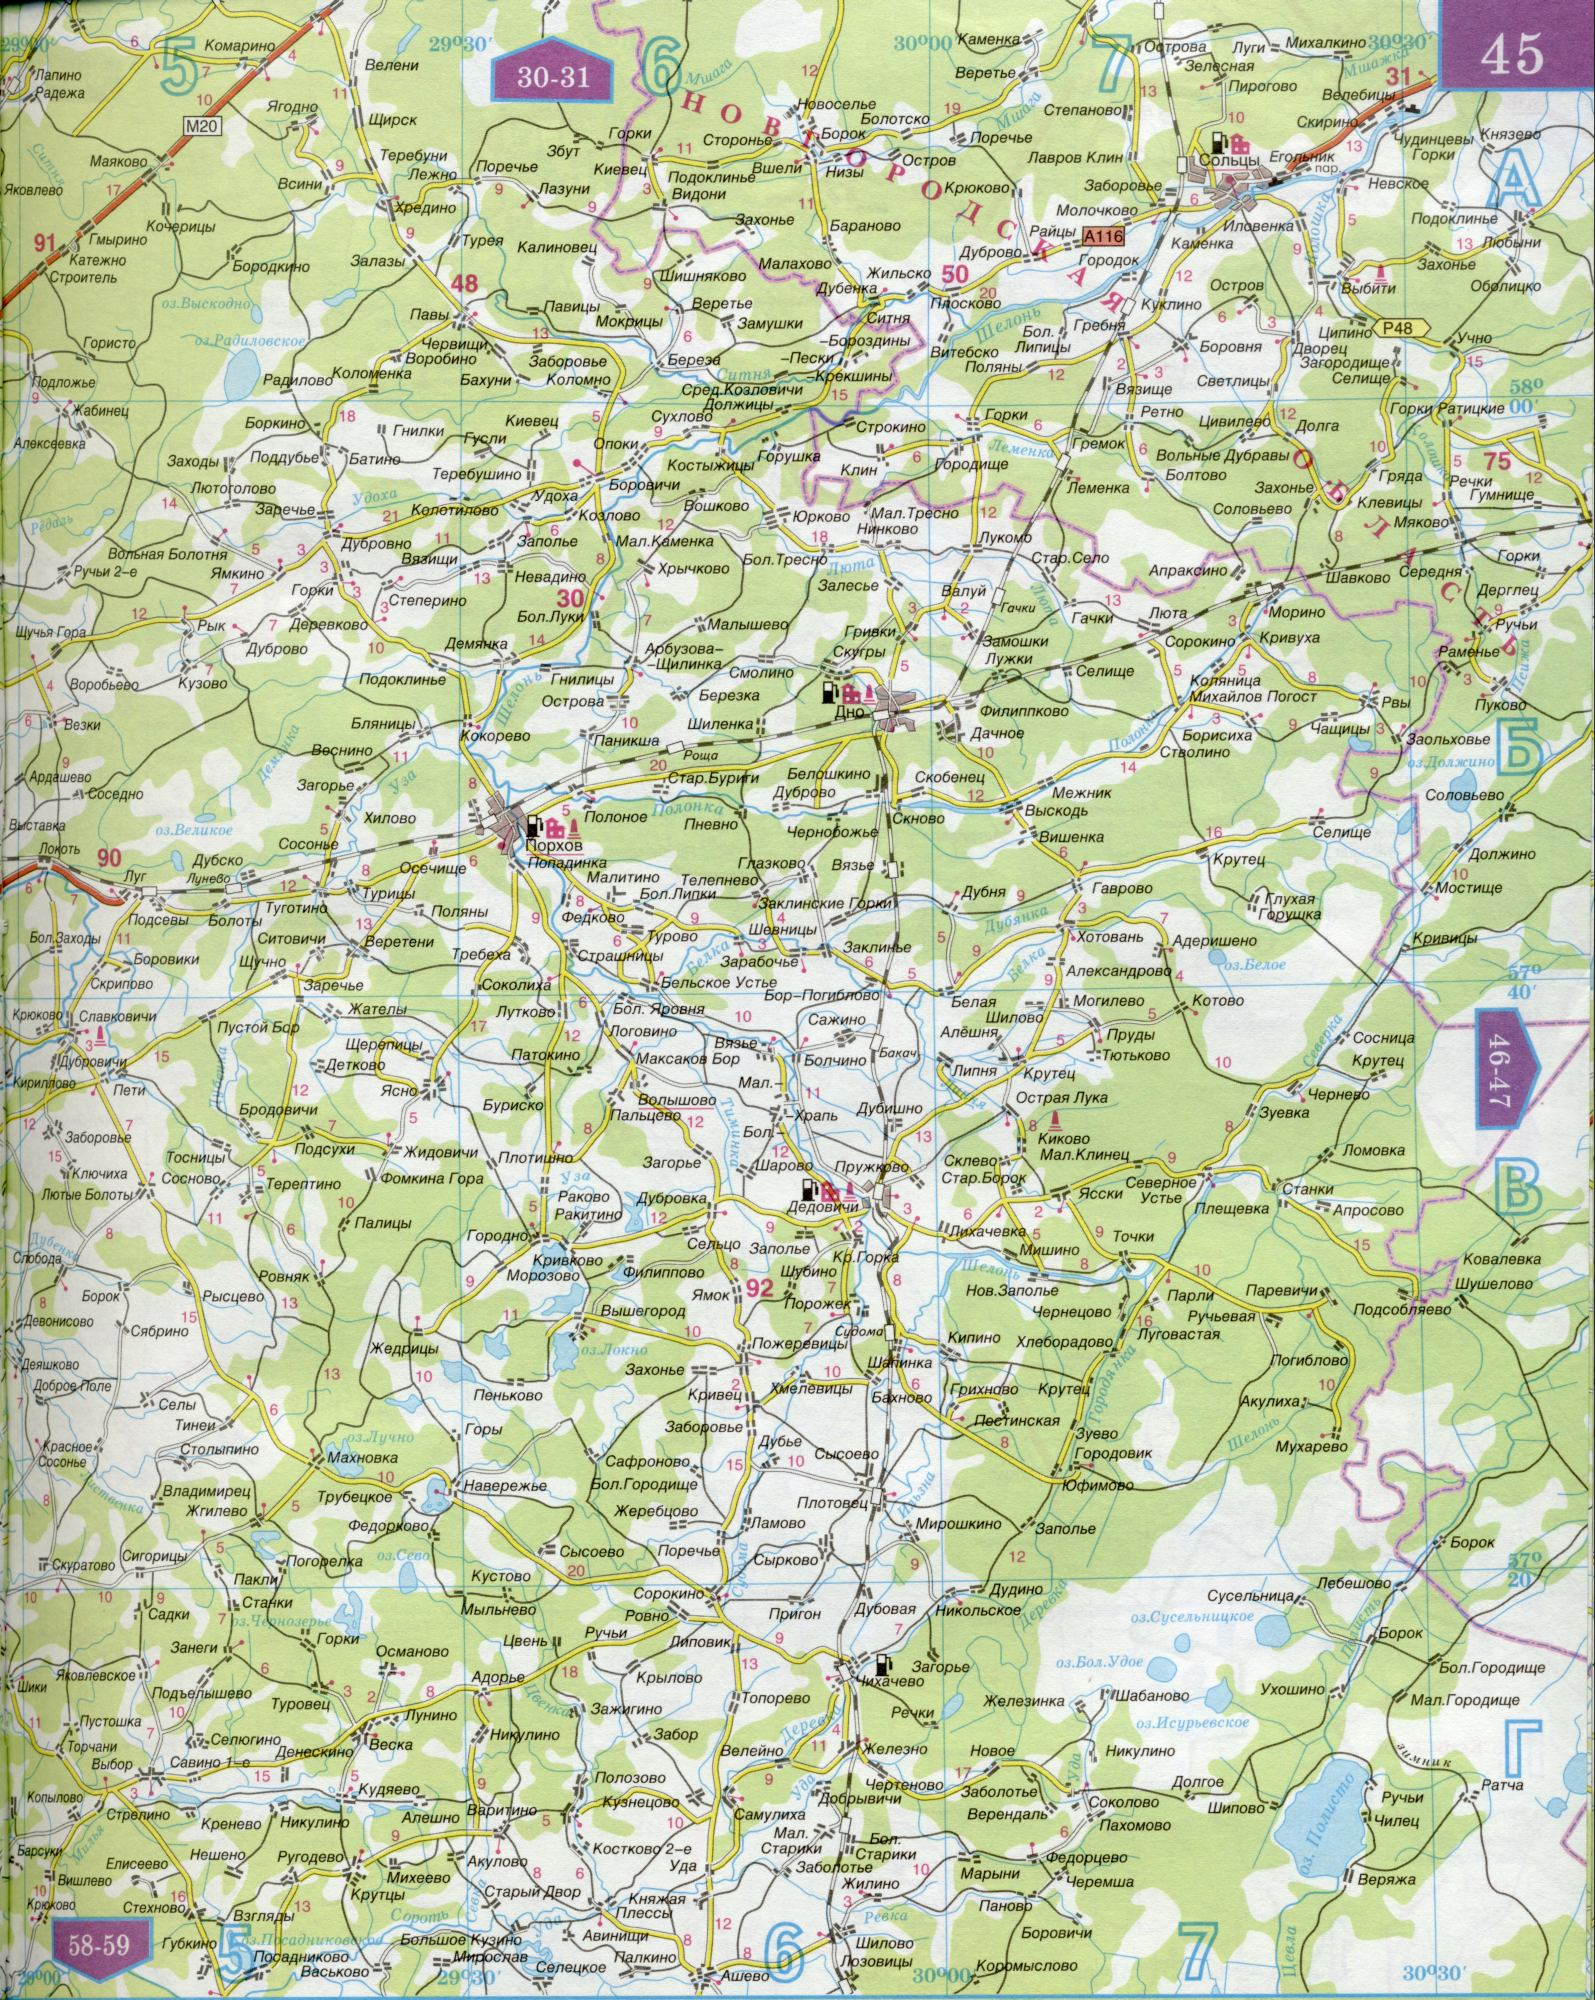 Road Map Of Russia Garmin Download For Free - nexfasr